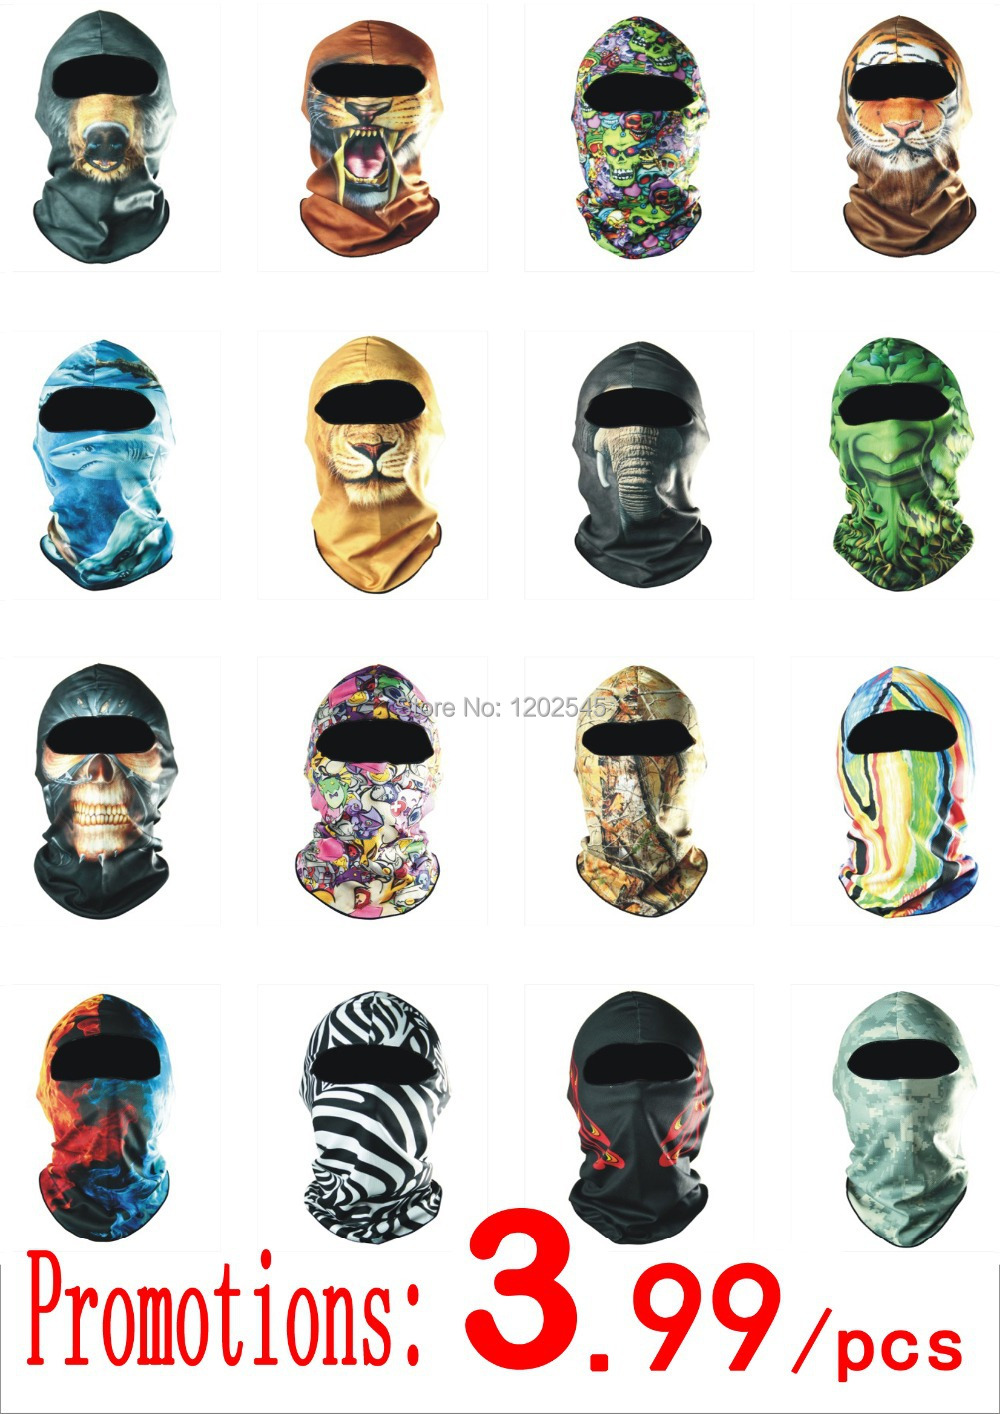 3D Brand Cycling Motorcycle Balaclava Headwear Ski Neck Protecting Masks Outdoor Bicycle Bike Hunting Protection Full Face Mask - Professional Factory Store store